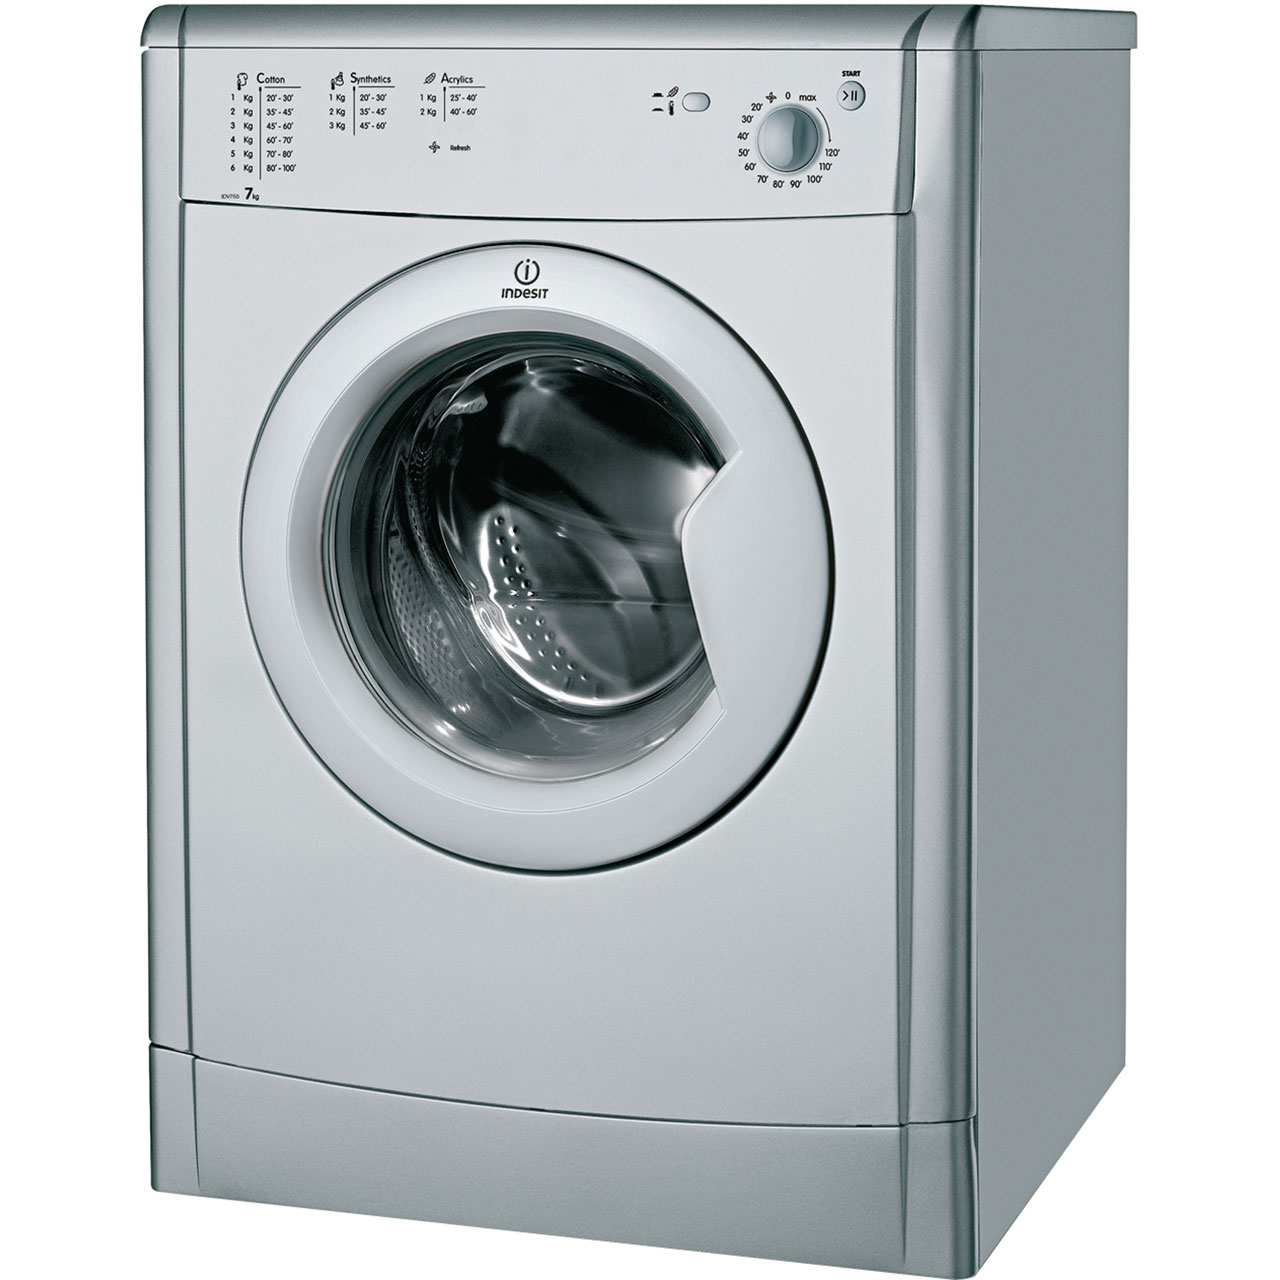 Indesit IDV75S Vented Tumble Dryer - Silver